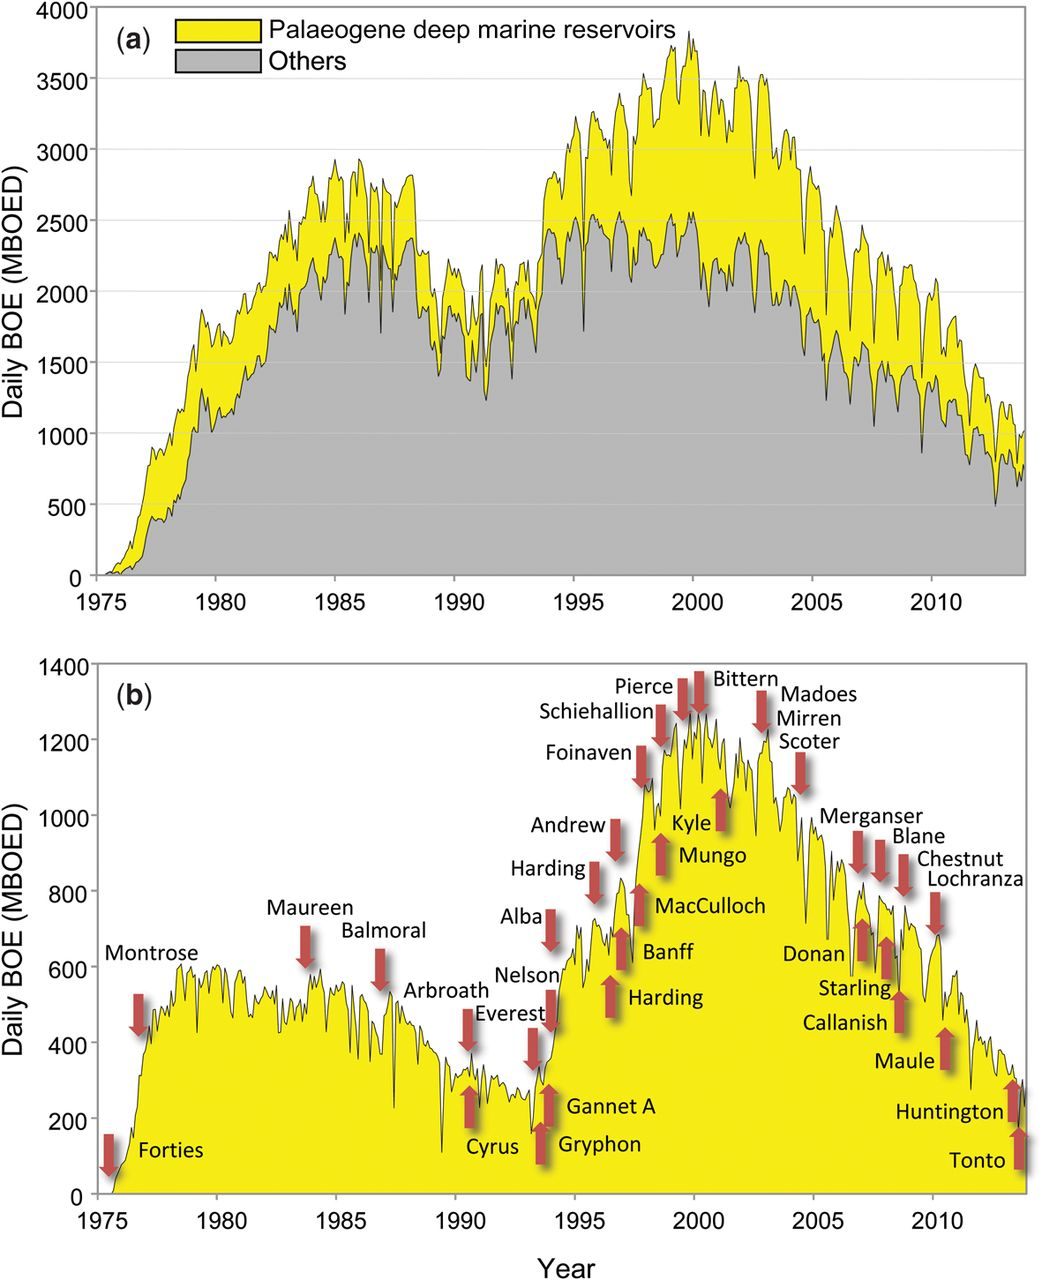 Tertiary deep-marine reservoirs of the North Sea region: an